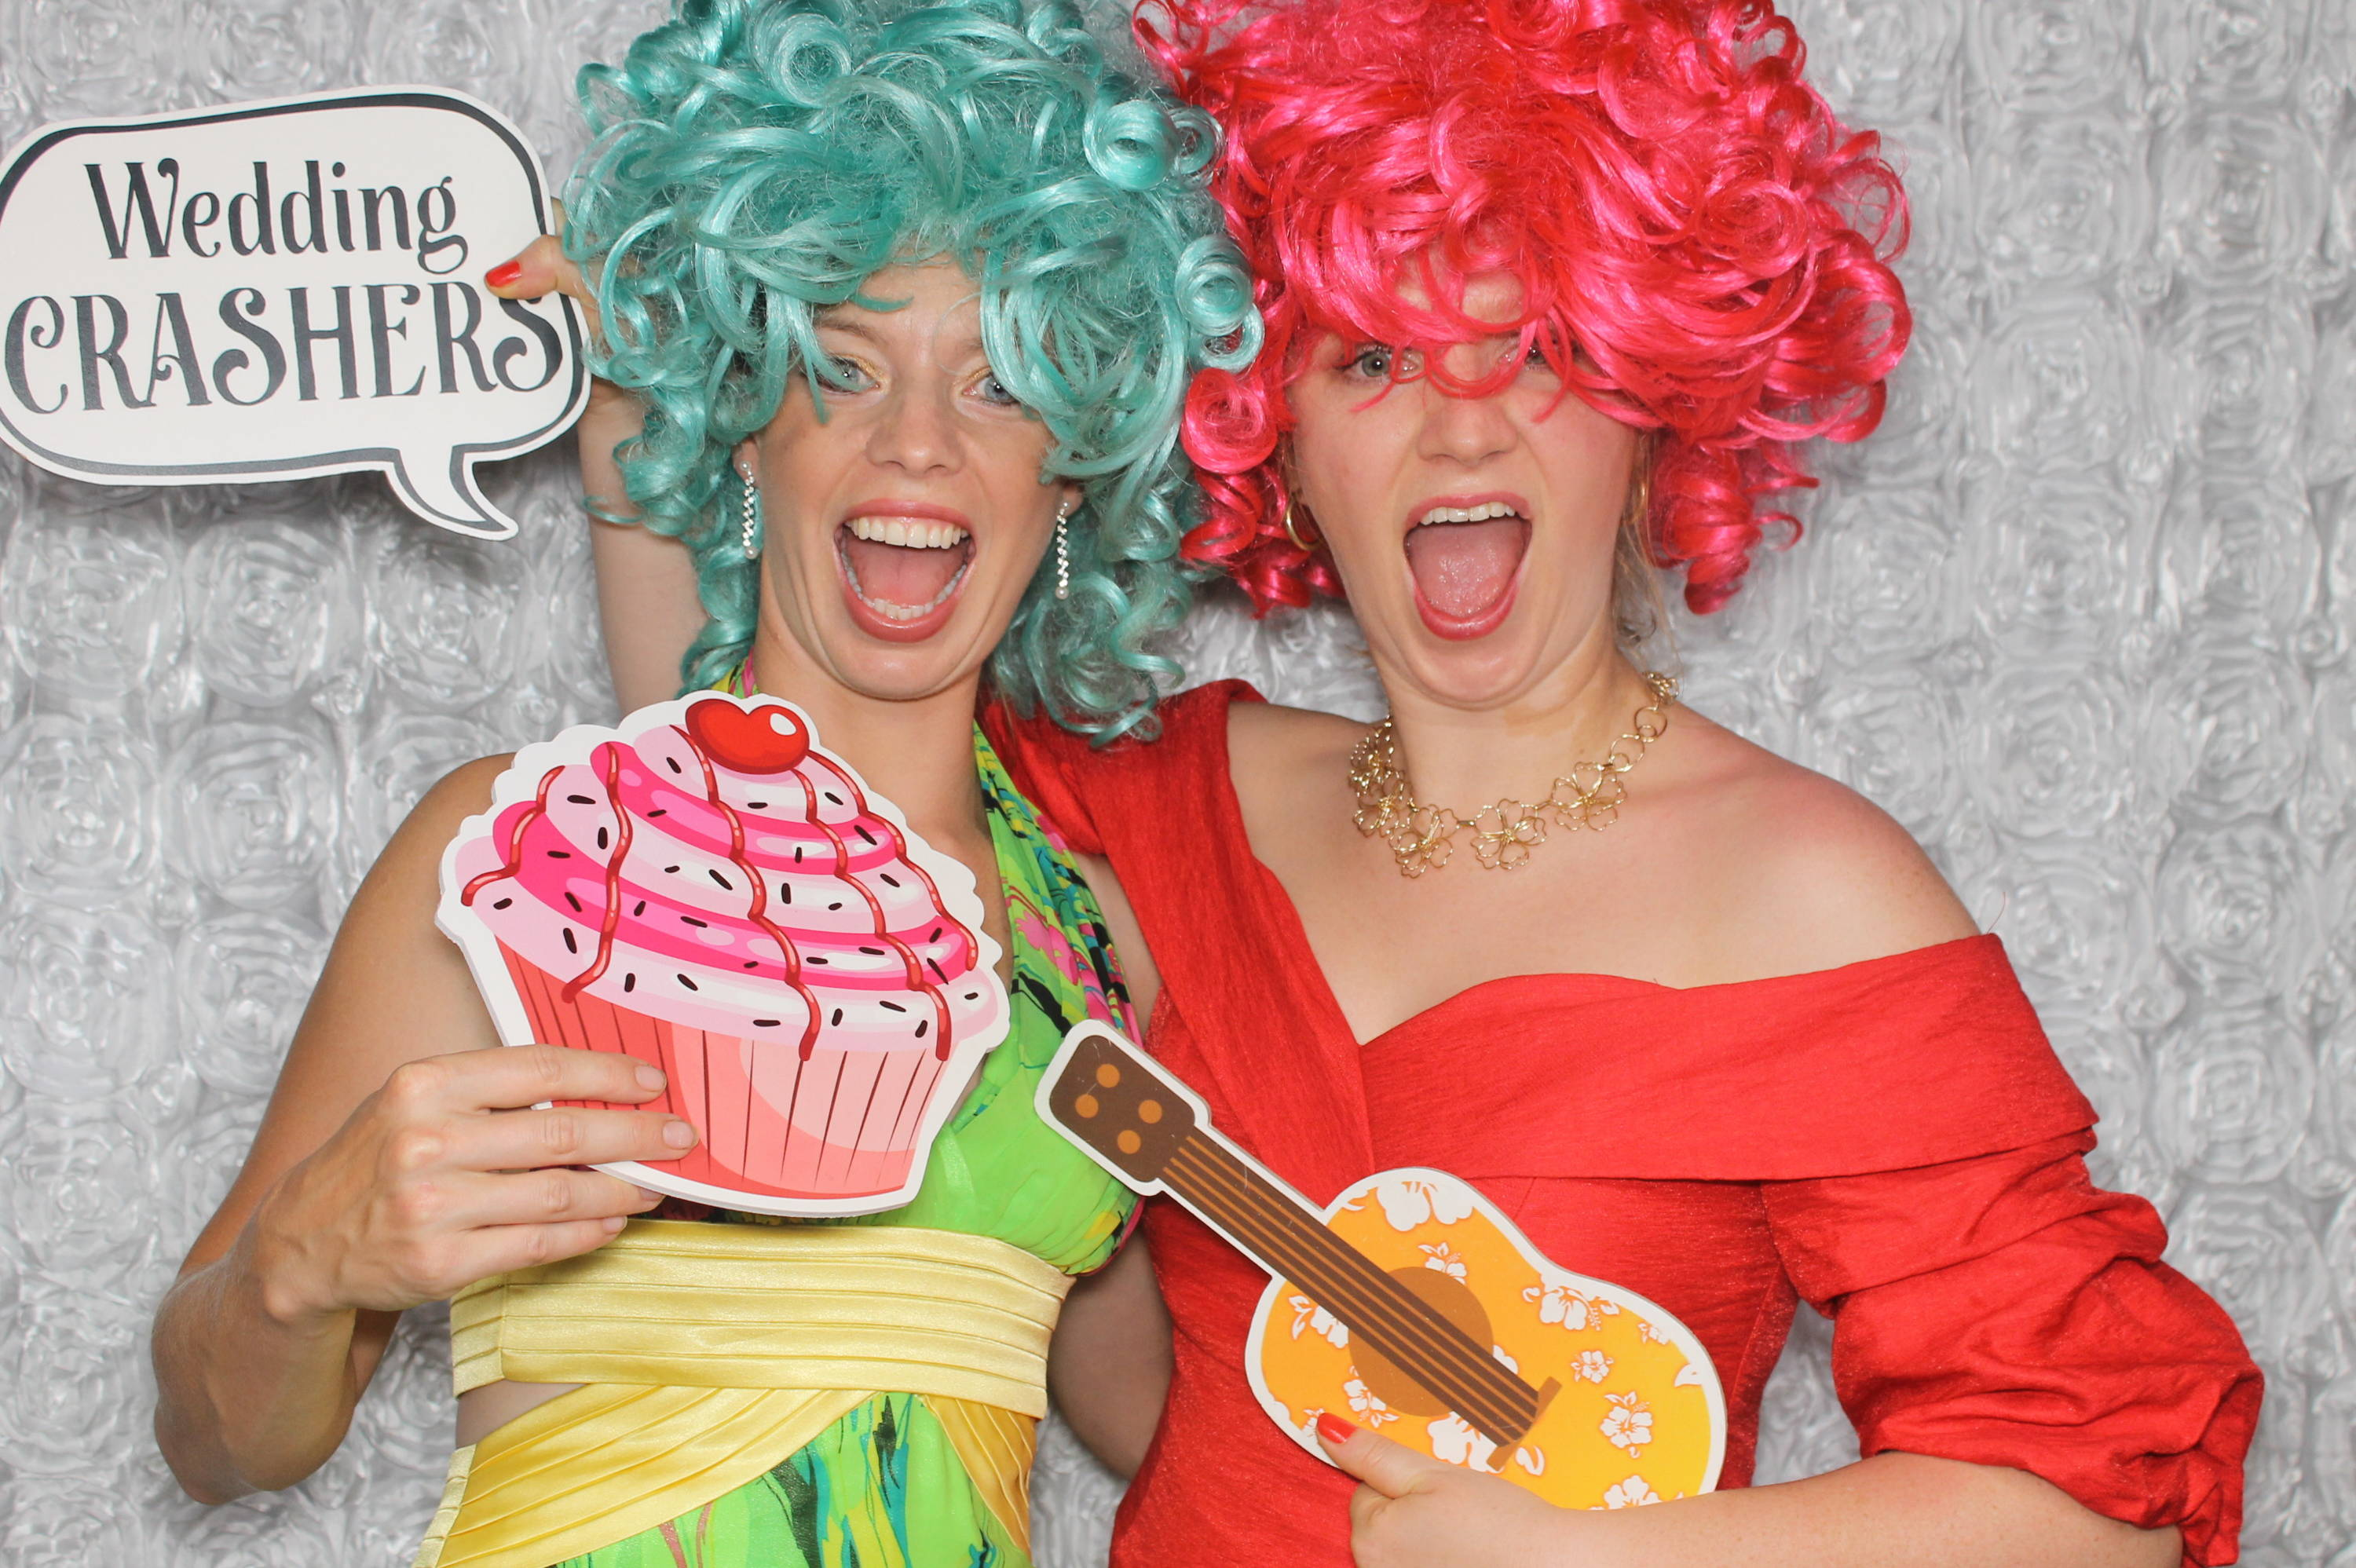 Two girls dressed in party costumes with photobooth hand signs